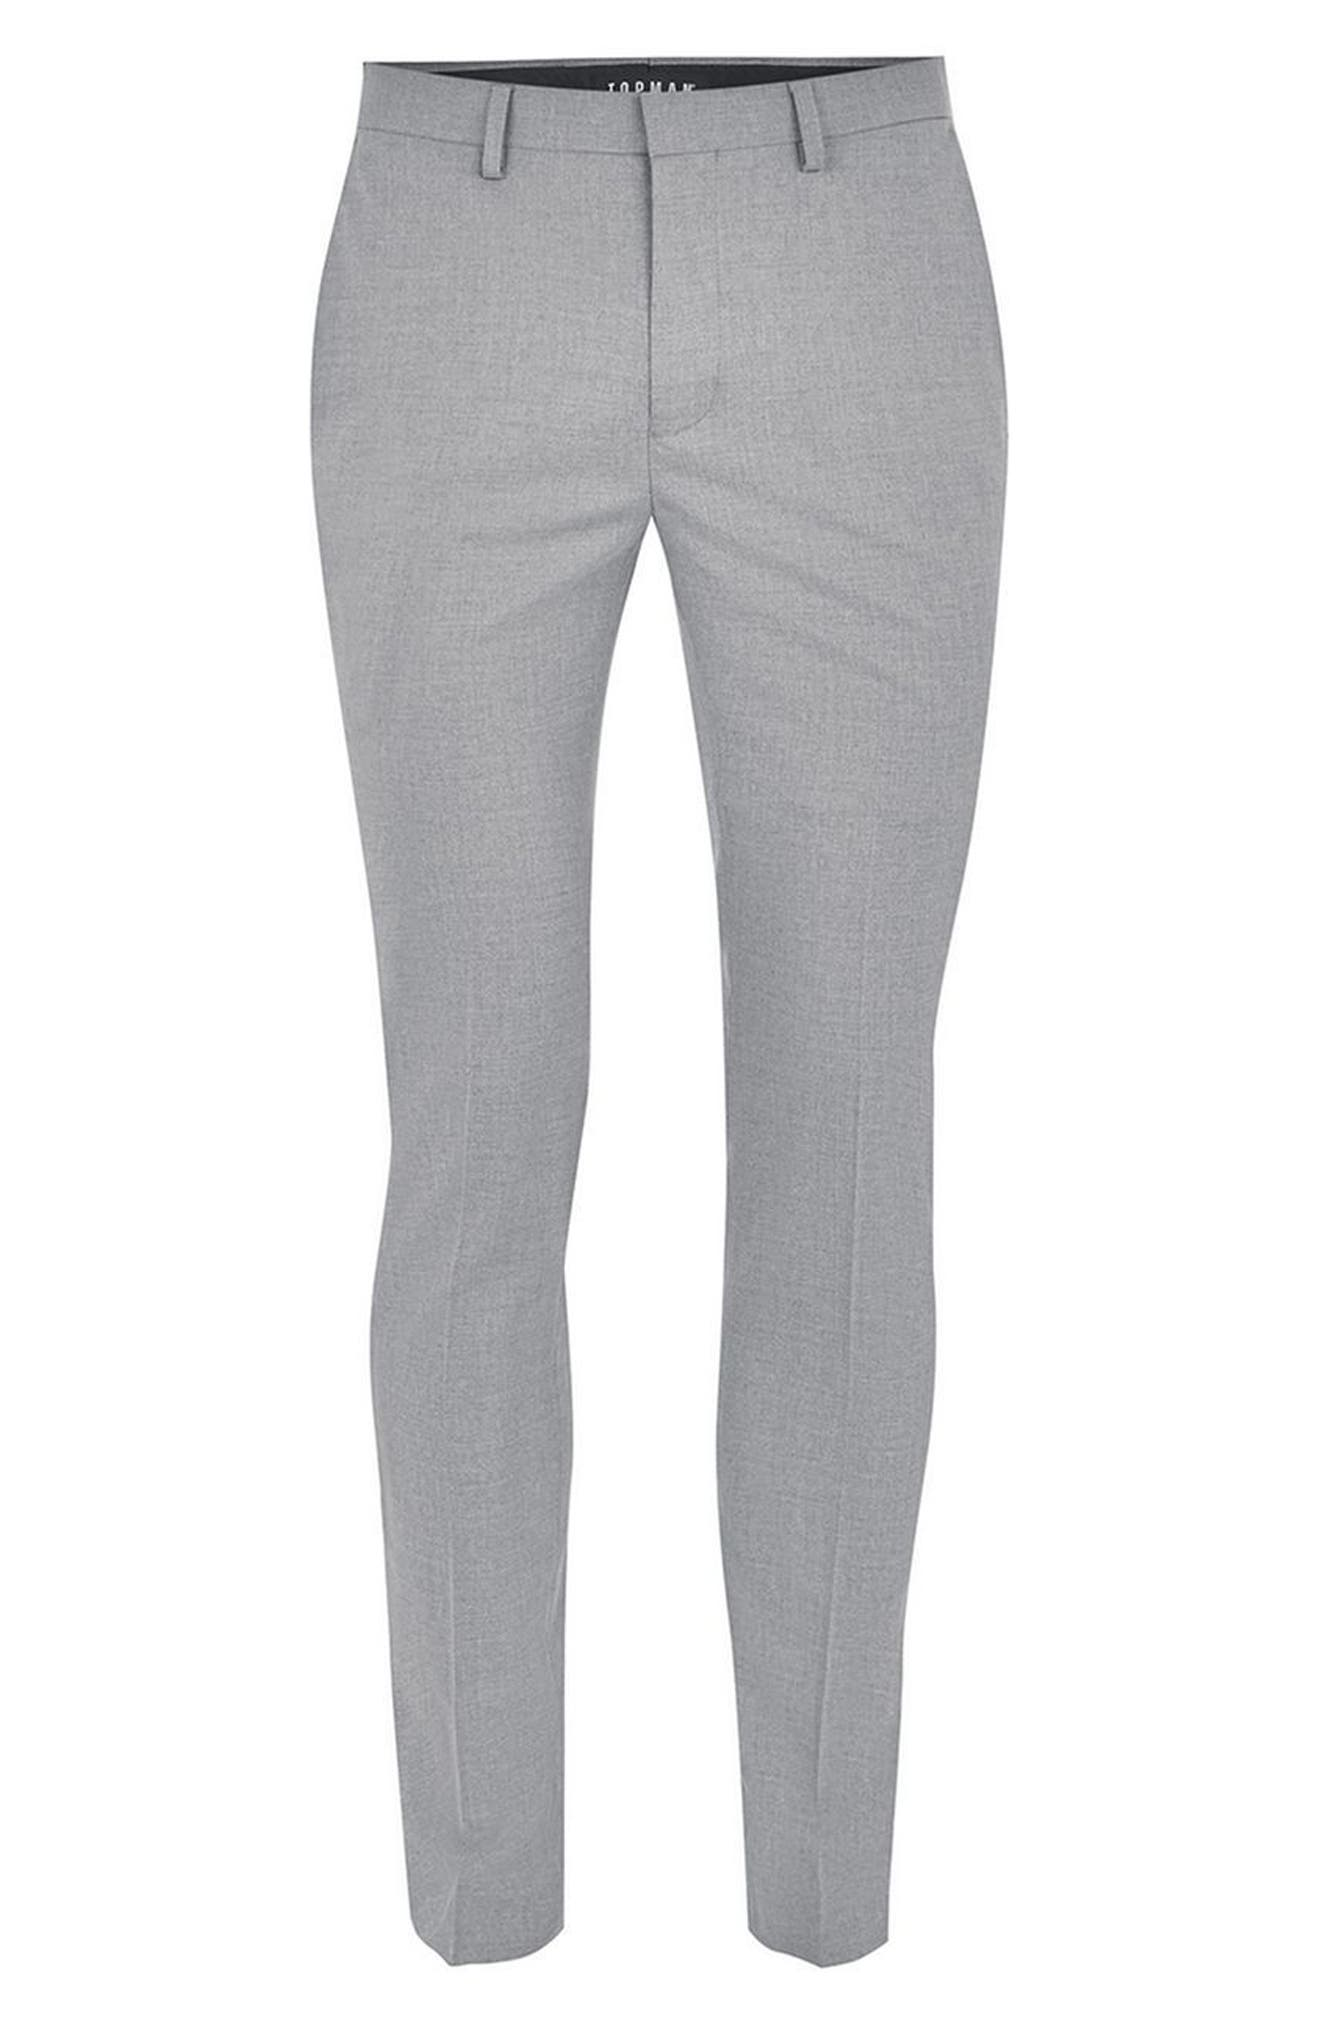 Ultra Skinny Fit Smart Trousers,                             Alternate thumbnail 4, color,                             020